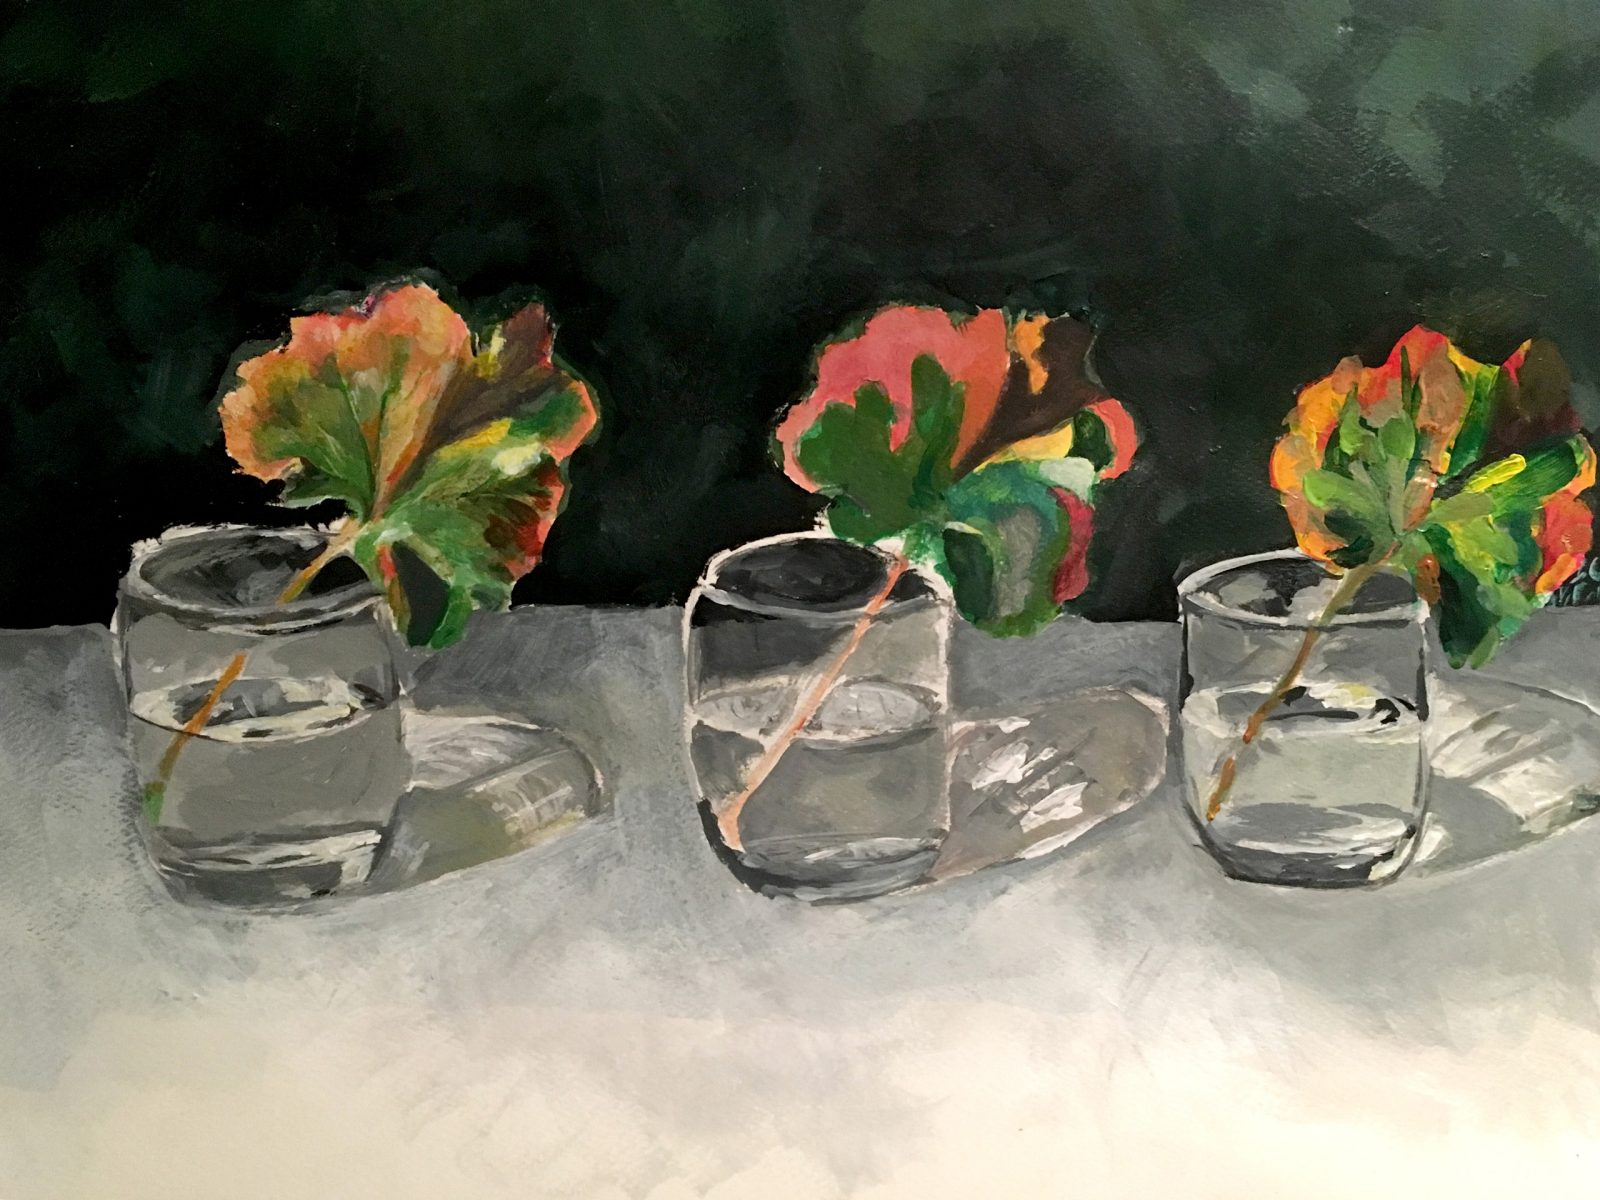 A painting of three leaves in three separate small glasses of water